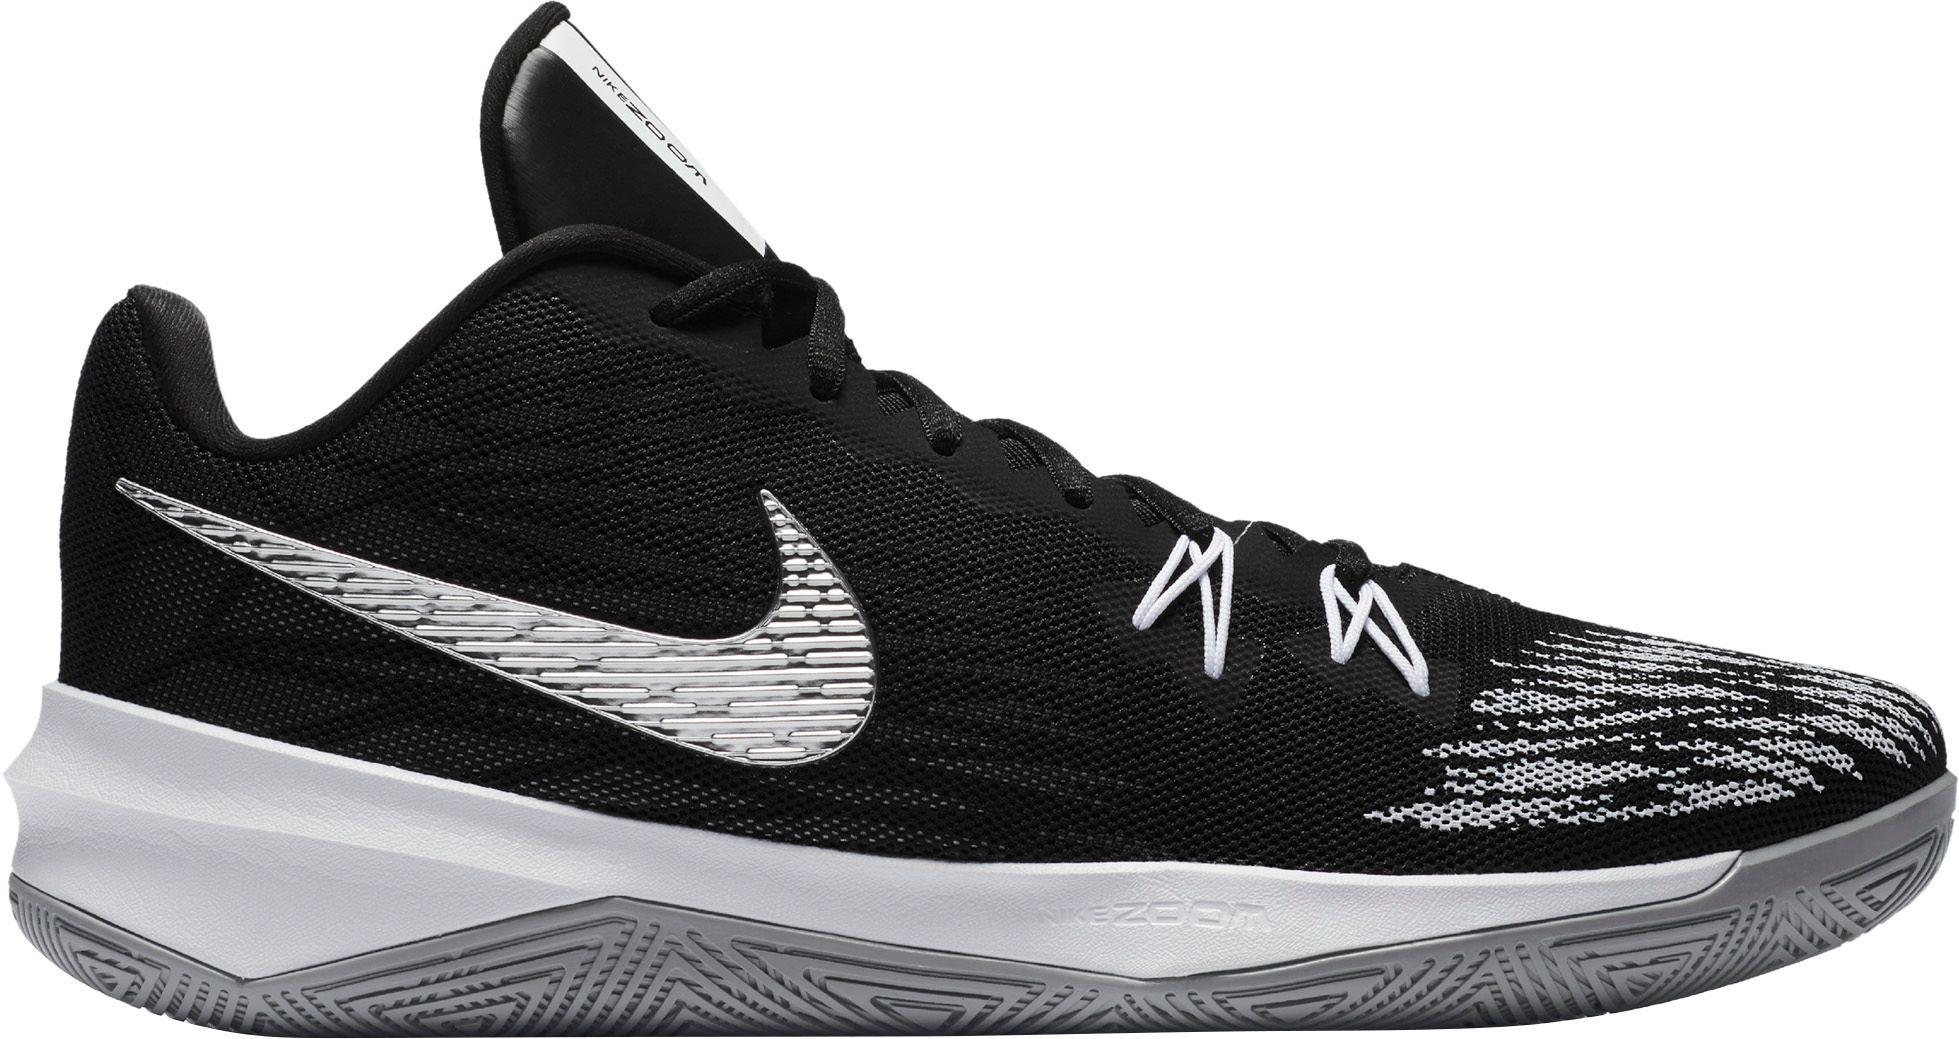 e5942a9cc394 Lyst - Nike Zoom Evidence Ii Men s Basketball Shoe in Black for Men ...